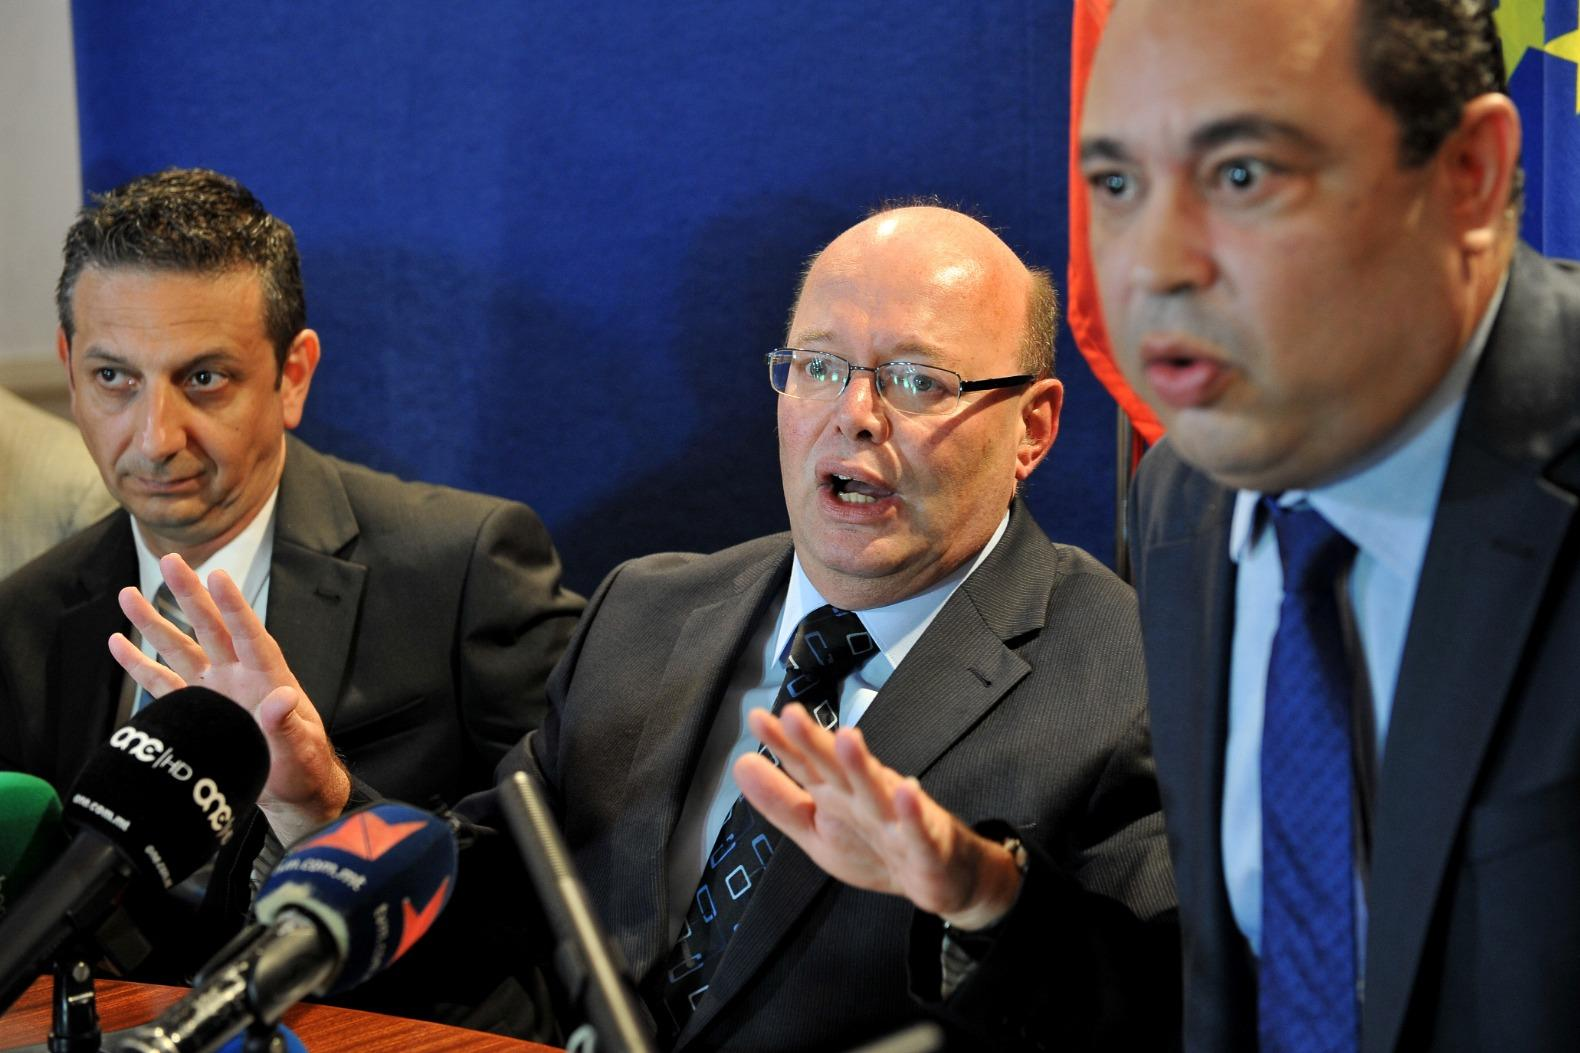 Silvio Valletta (right) with Police Commissioner Lawrence Cutajar in a news conference after the murder of Daphne Caruana Galizia.